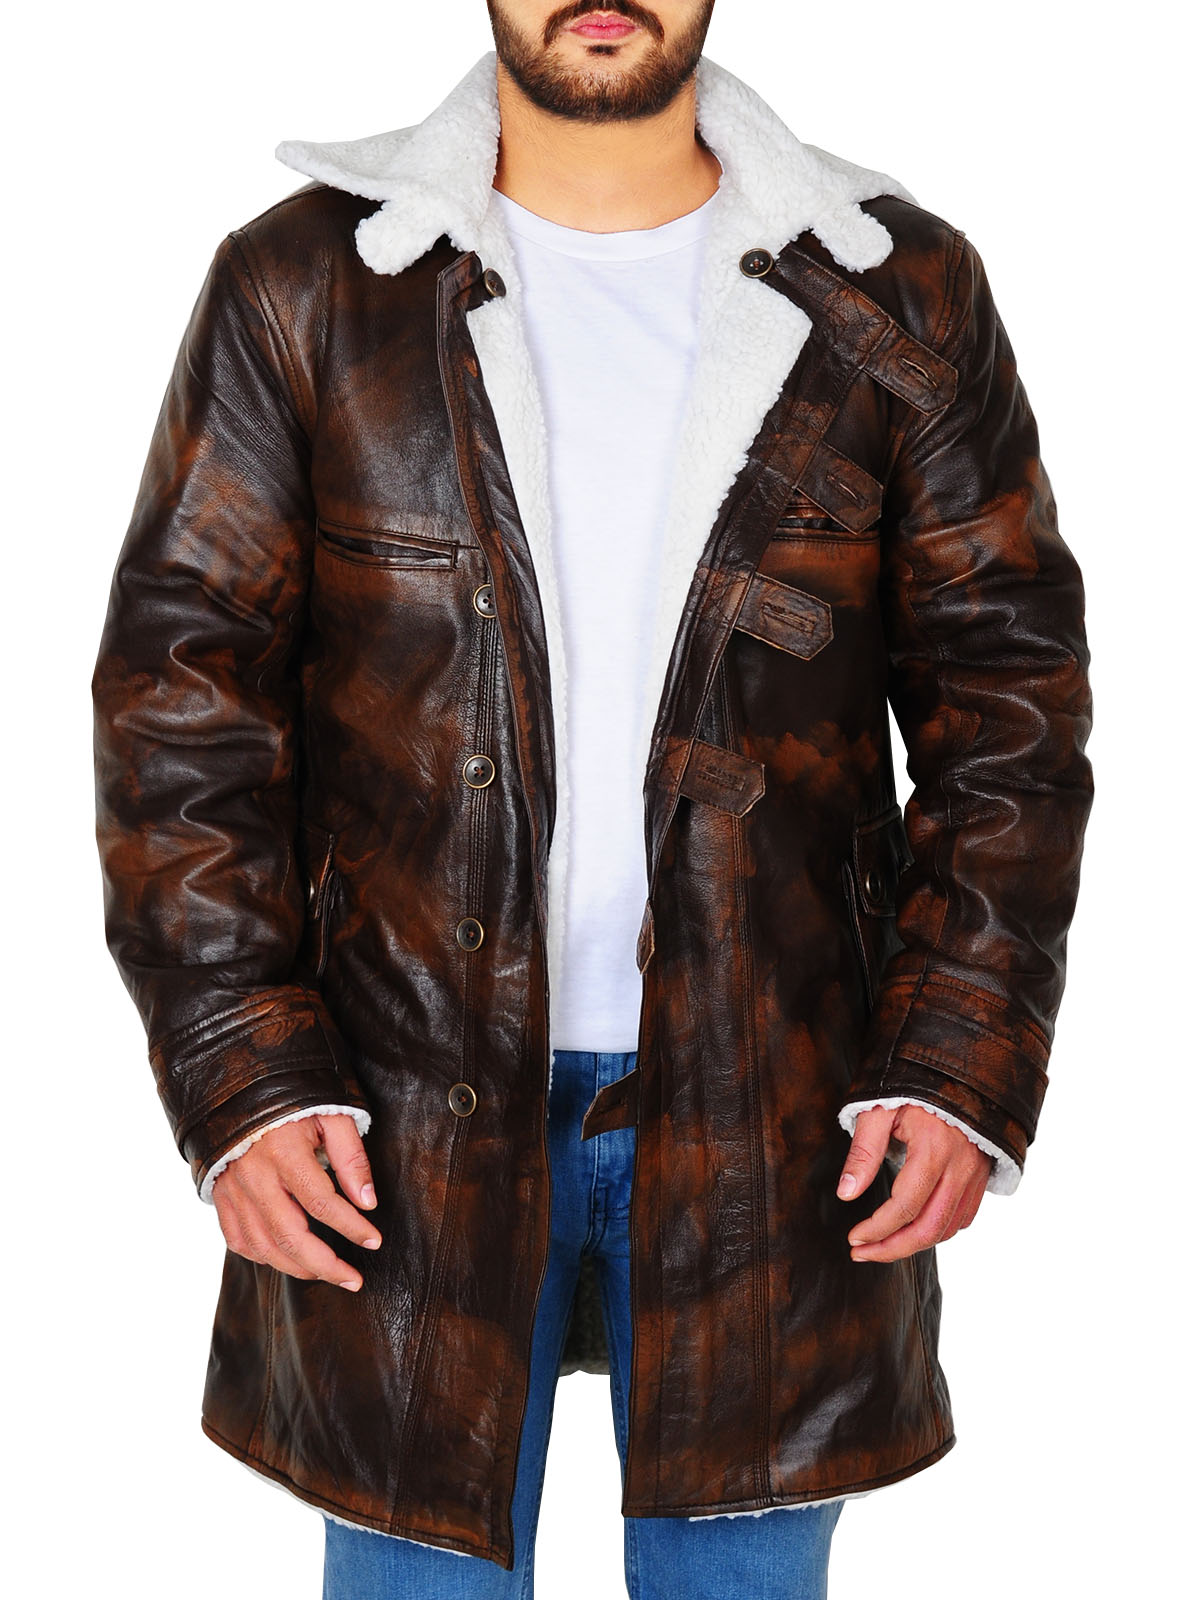 Tom Hardy Bane Dark Knight Rises Real Leather Faux Fur Coat Jacket for men